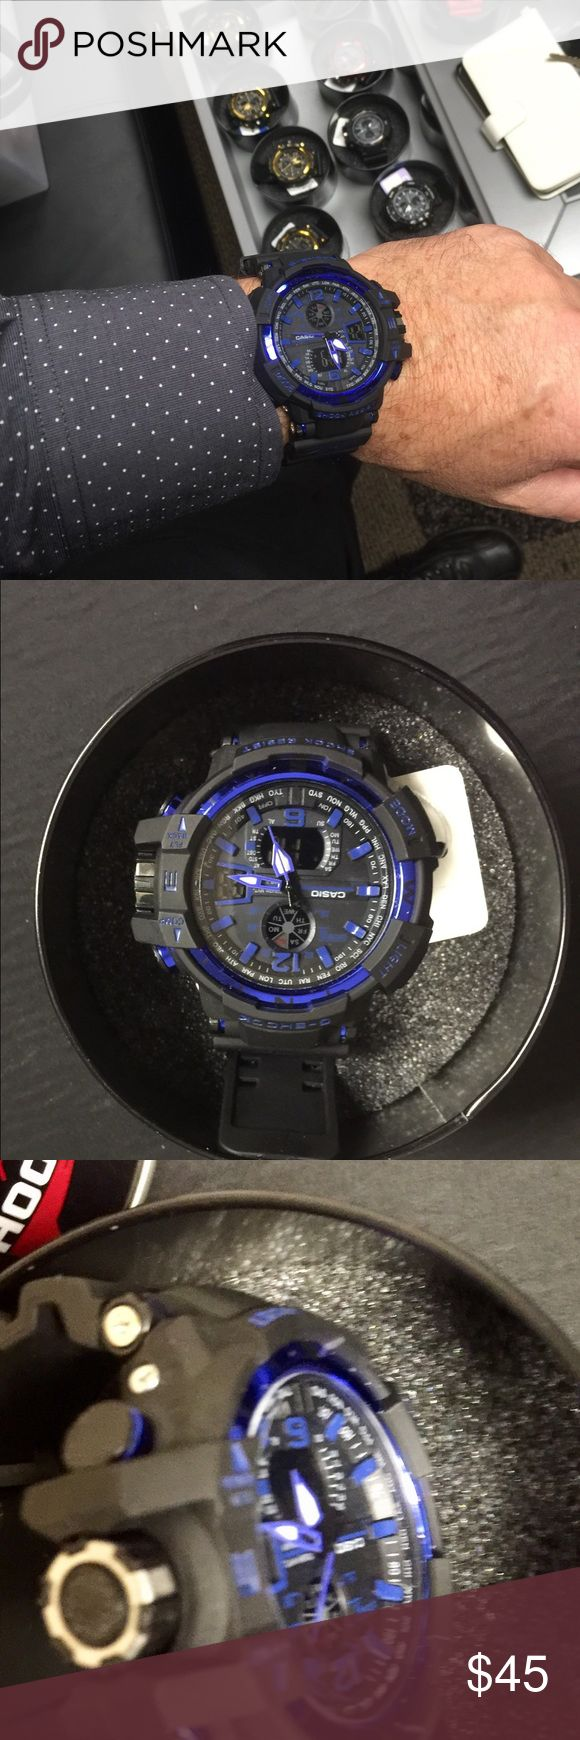 New G-Shock watch Last one at this price Includes Tin case and instructions guide  Price is discounted already and firm Item specifics Band Width: 20 -29 millimeters(mm)   Style: Sport   Dial Material Type: Plastic   Movement: Digital   Dial Window Material Type: Plastic   Feature: Multiple Time Zone   Dial Shape: Round   Band Material Type: PU   Model Number: GA100     Dial Display: Analog-Digital   Gender: Unisex   shock resist: yes Casio Accessories Watches